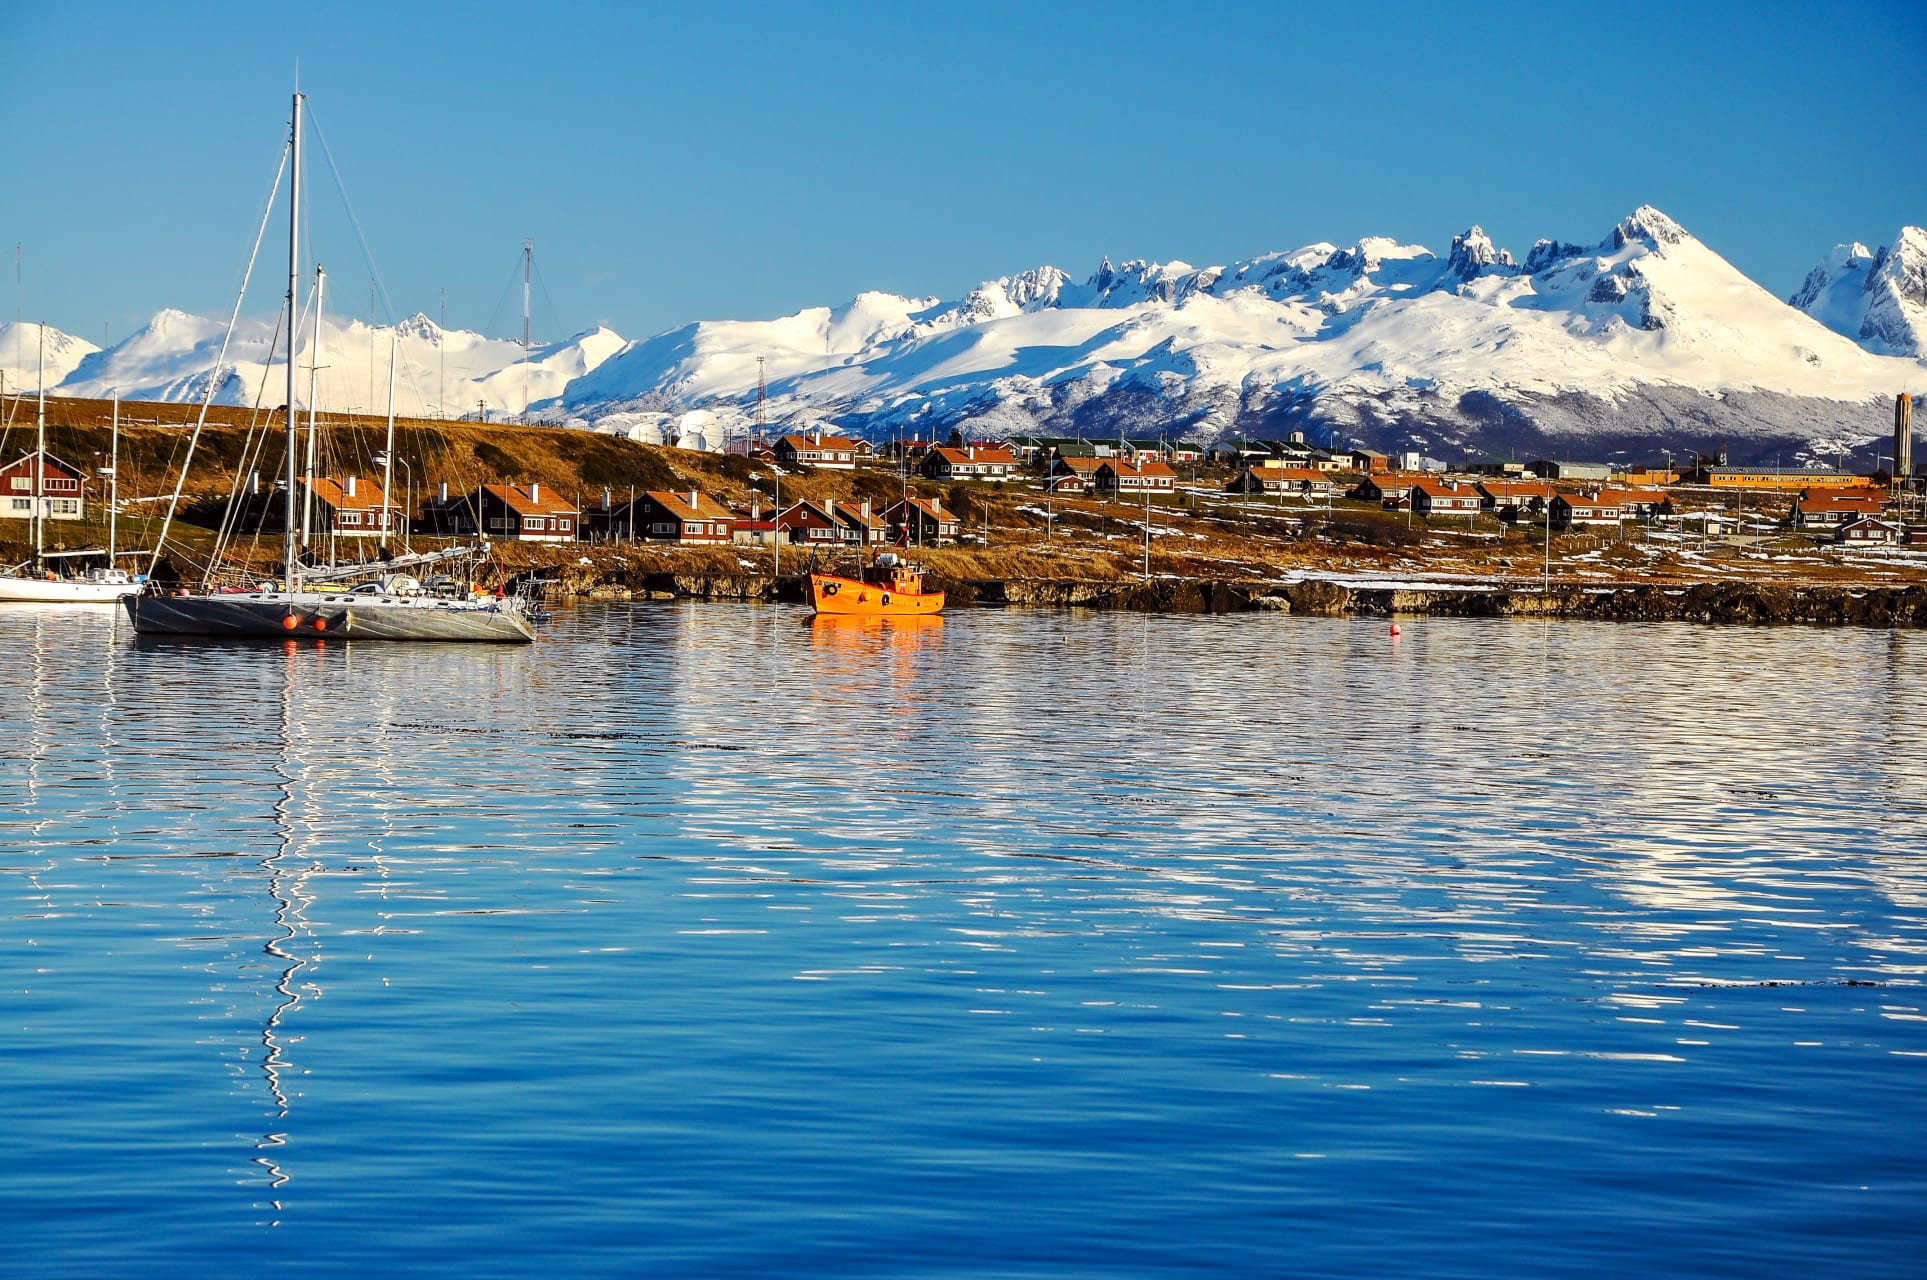 Ushuaia - Ushuaia: drive around the southernmost city in the world